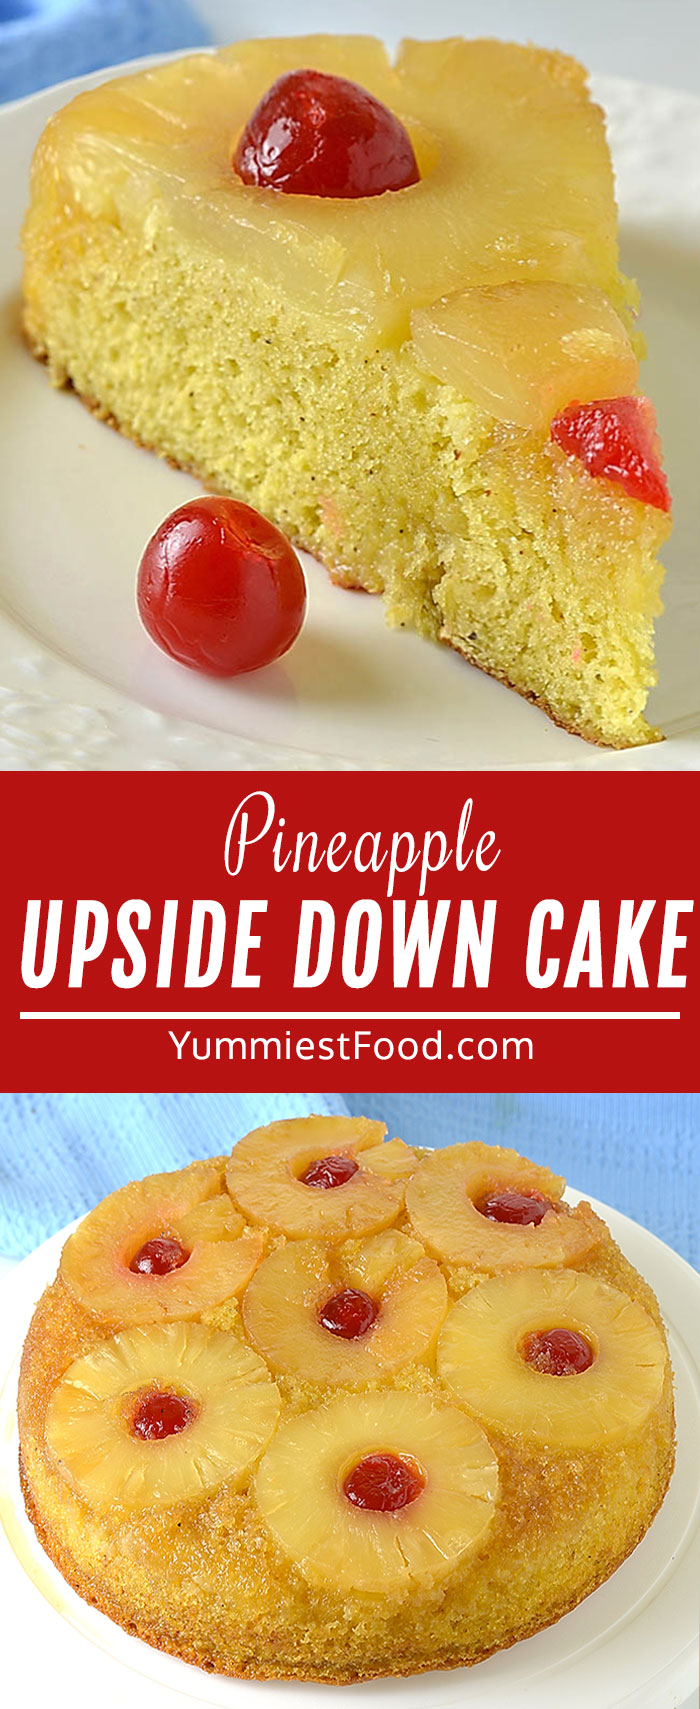 Pineapple Upside-Down Cake is a simple, sweet dessert with an easy buttery homemade cake topped with delicious caramelized pineapple toping and even a cherry on top! Perfect spring and summer dessert! #desserts #dessertrecipes #easyrecipes #cake